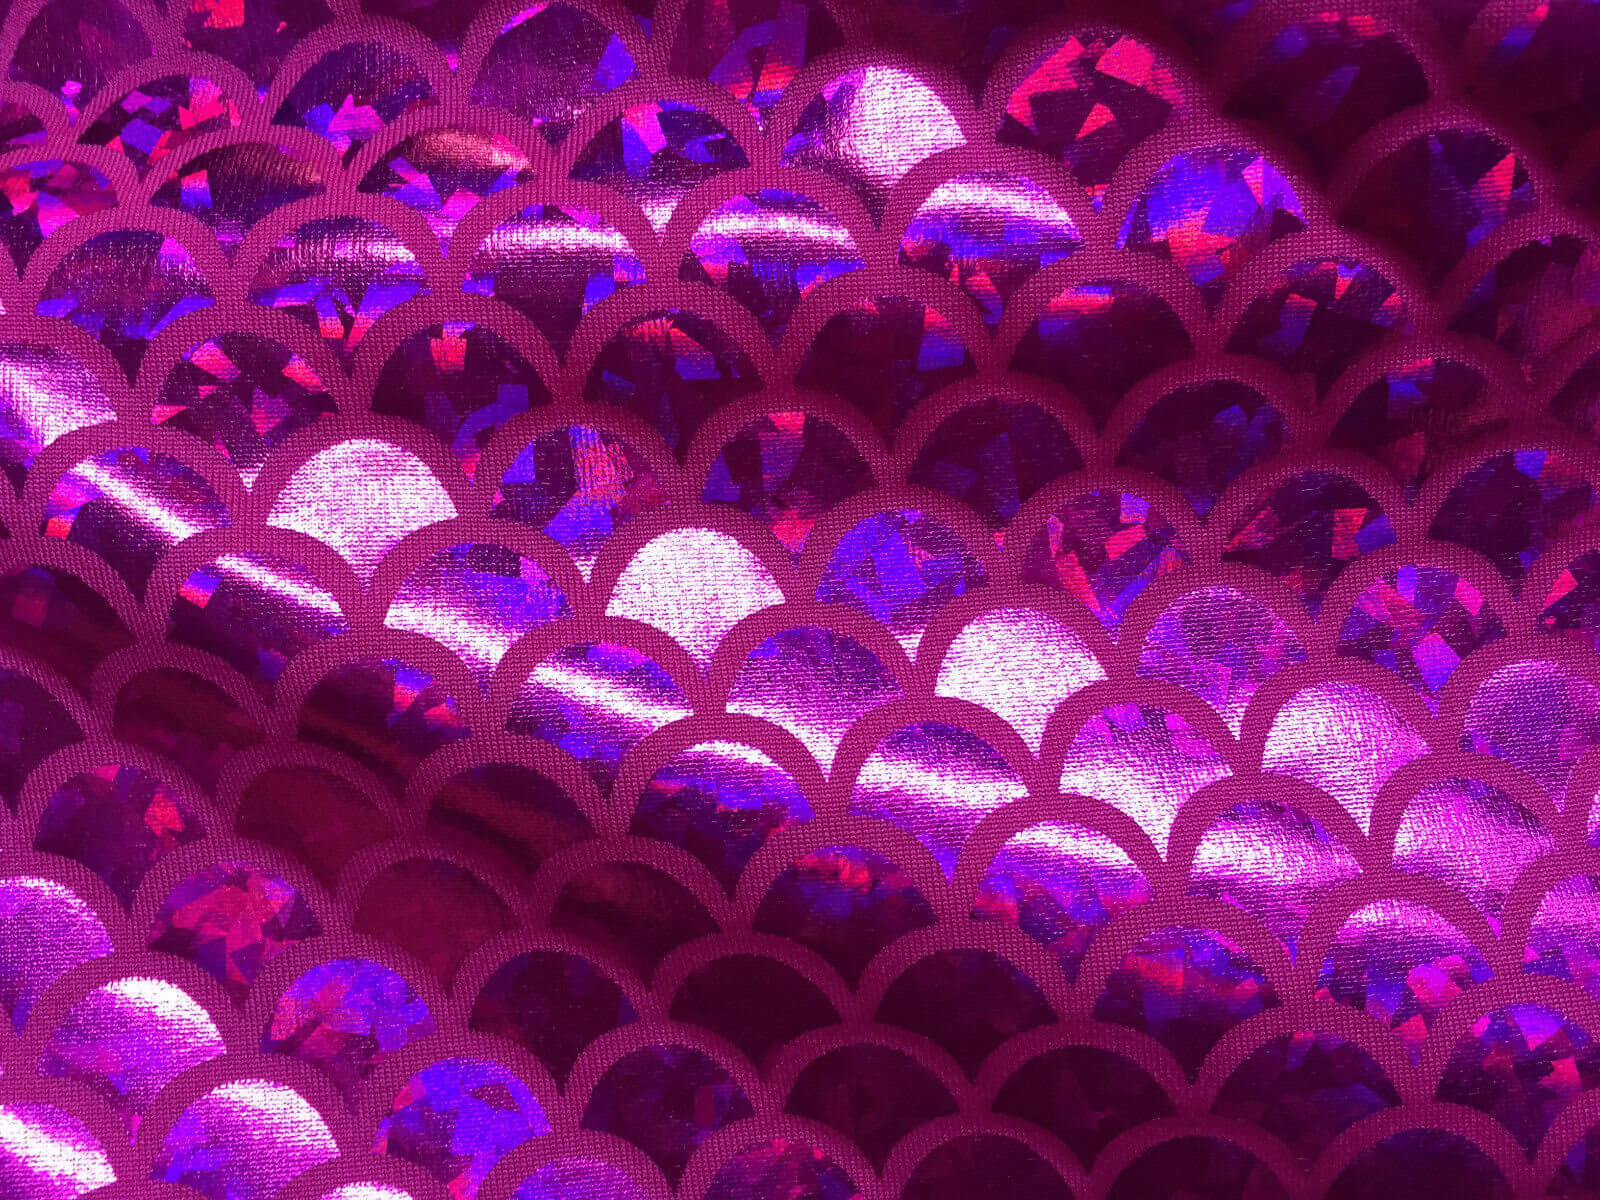 mermaid-scale-fabric-fish-tale-foil-2-way-stretch-lycra-spandex-material-150cm-wide-pink-hologram-scales-5b6b640a1.jpg